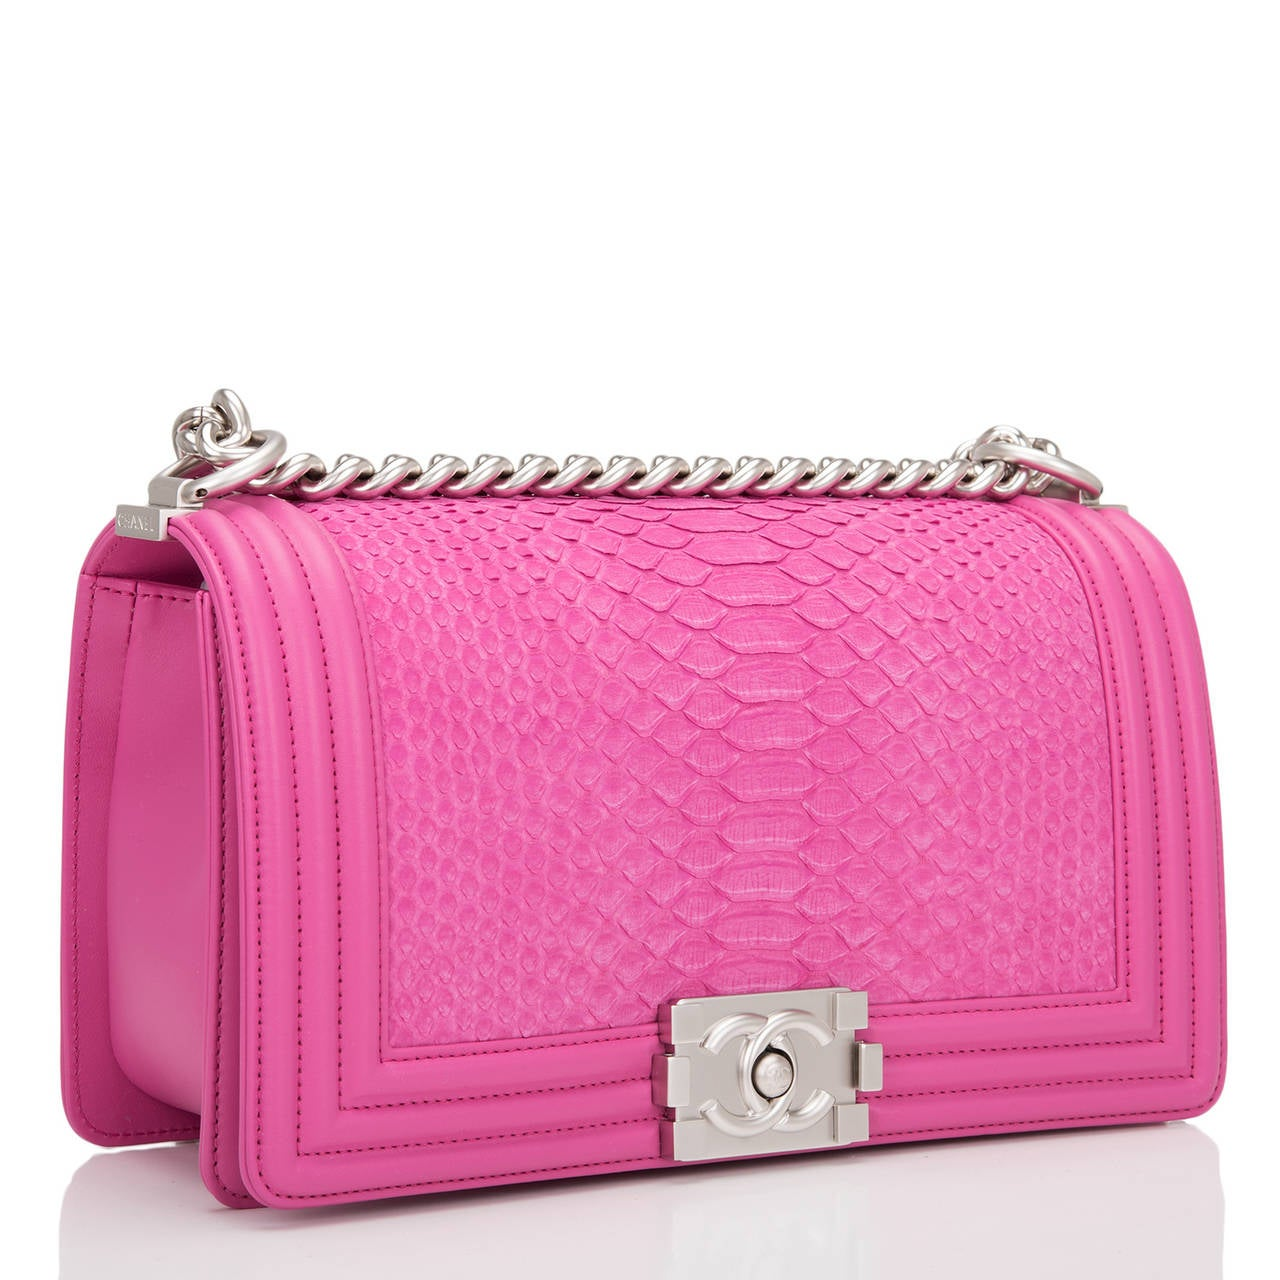 This Chanel pink python Medium Boy bag features beautiful pink python skin and matte silver tone hardware with pink lambskin trim. This Chanel bag is in the classic Boy style with a full front flap with the Boy signature CC push lock closure detail